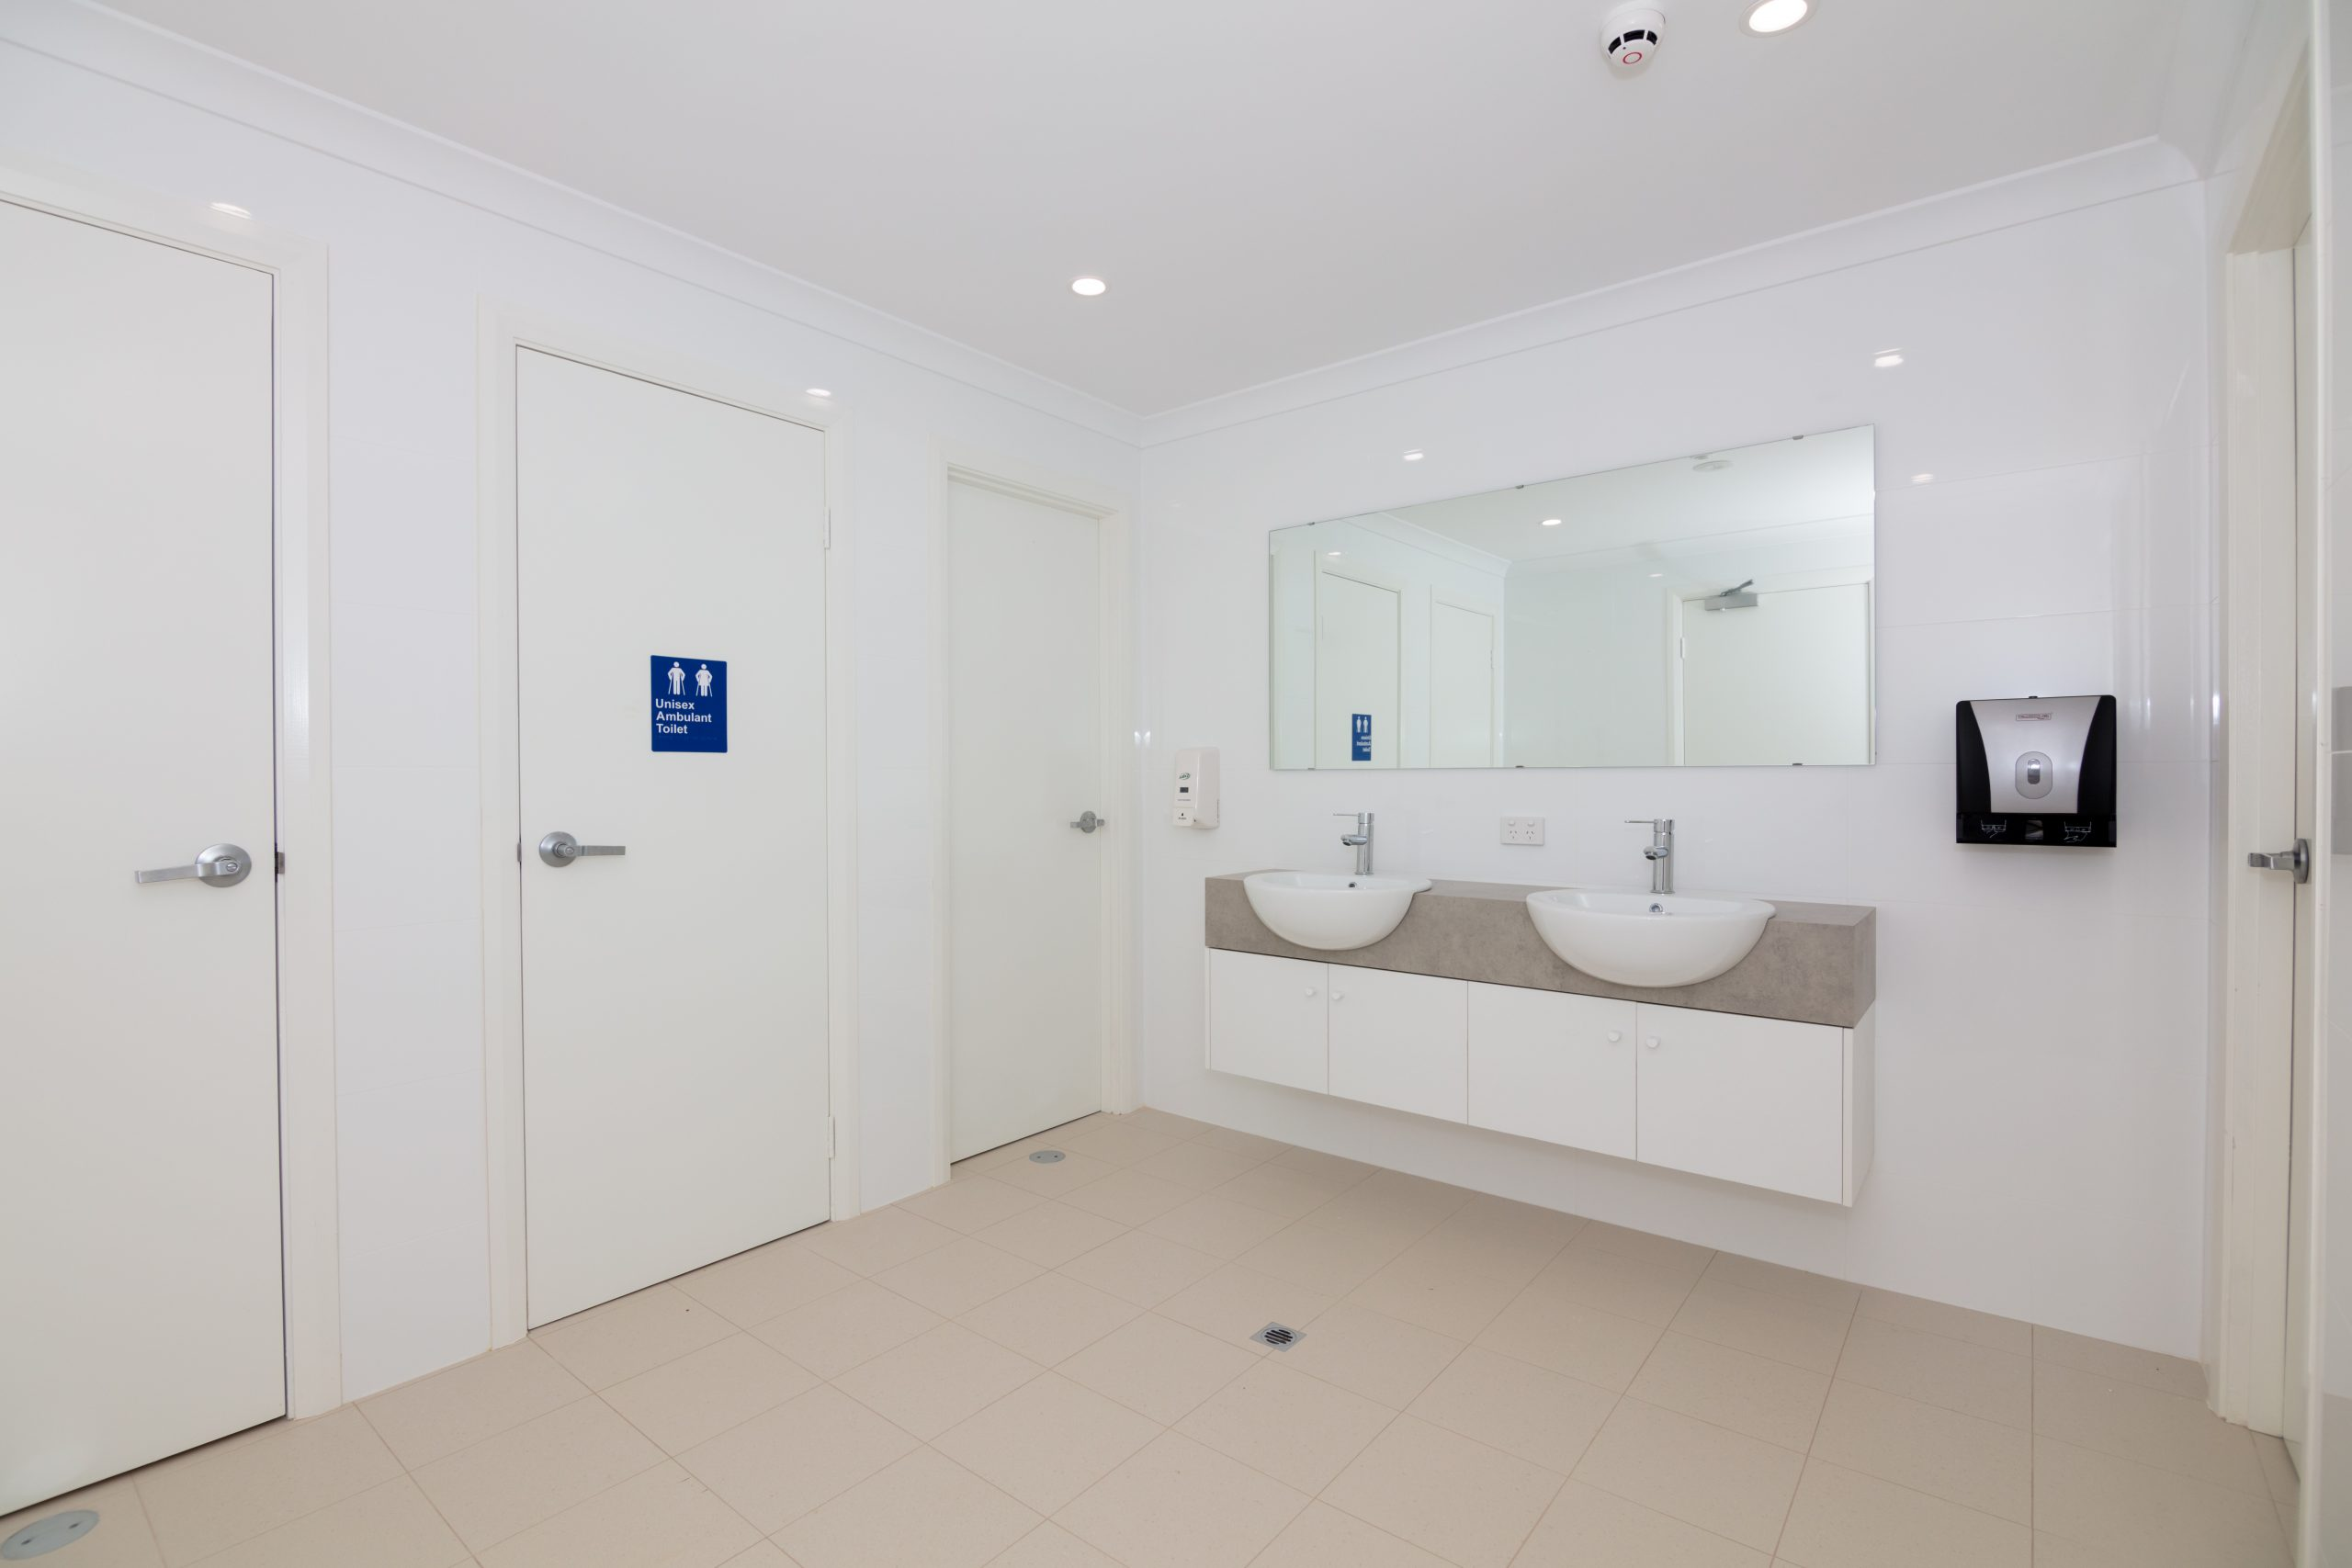 Communal toilets and showers